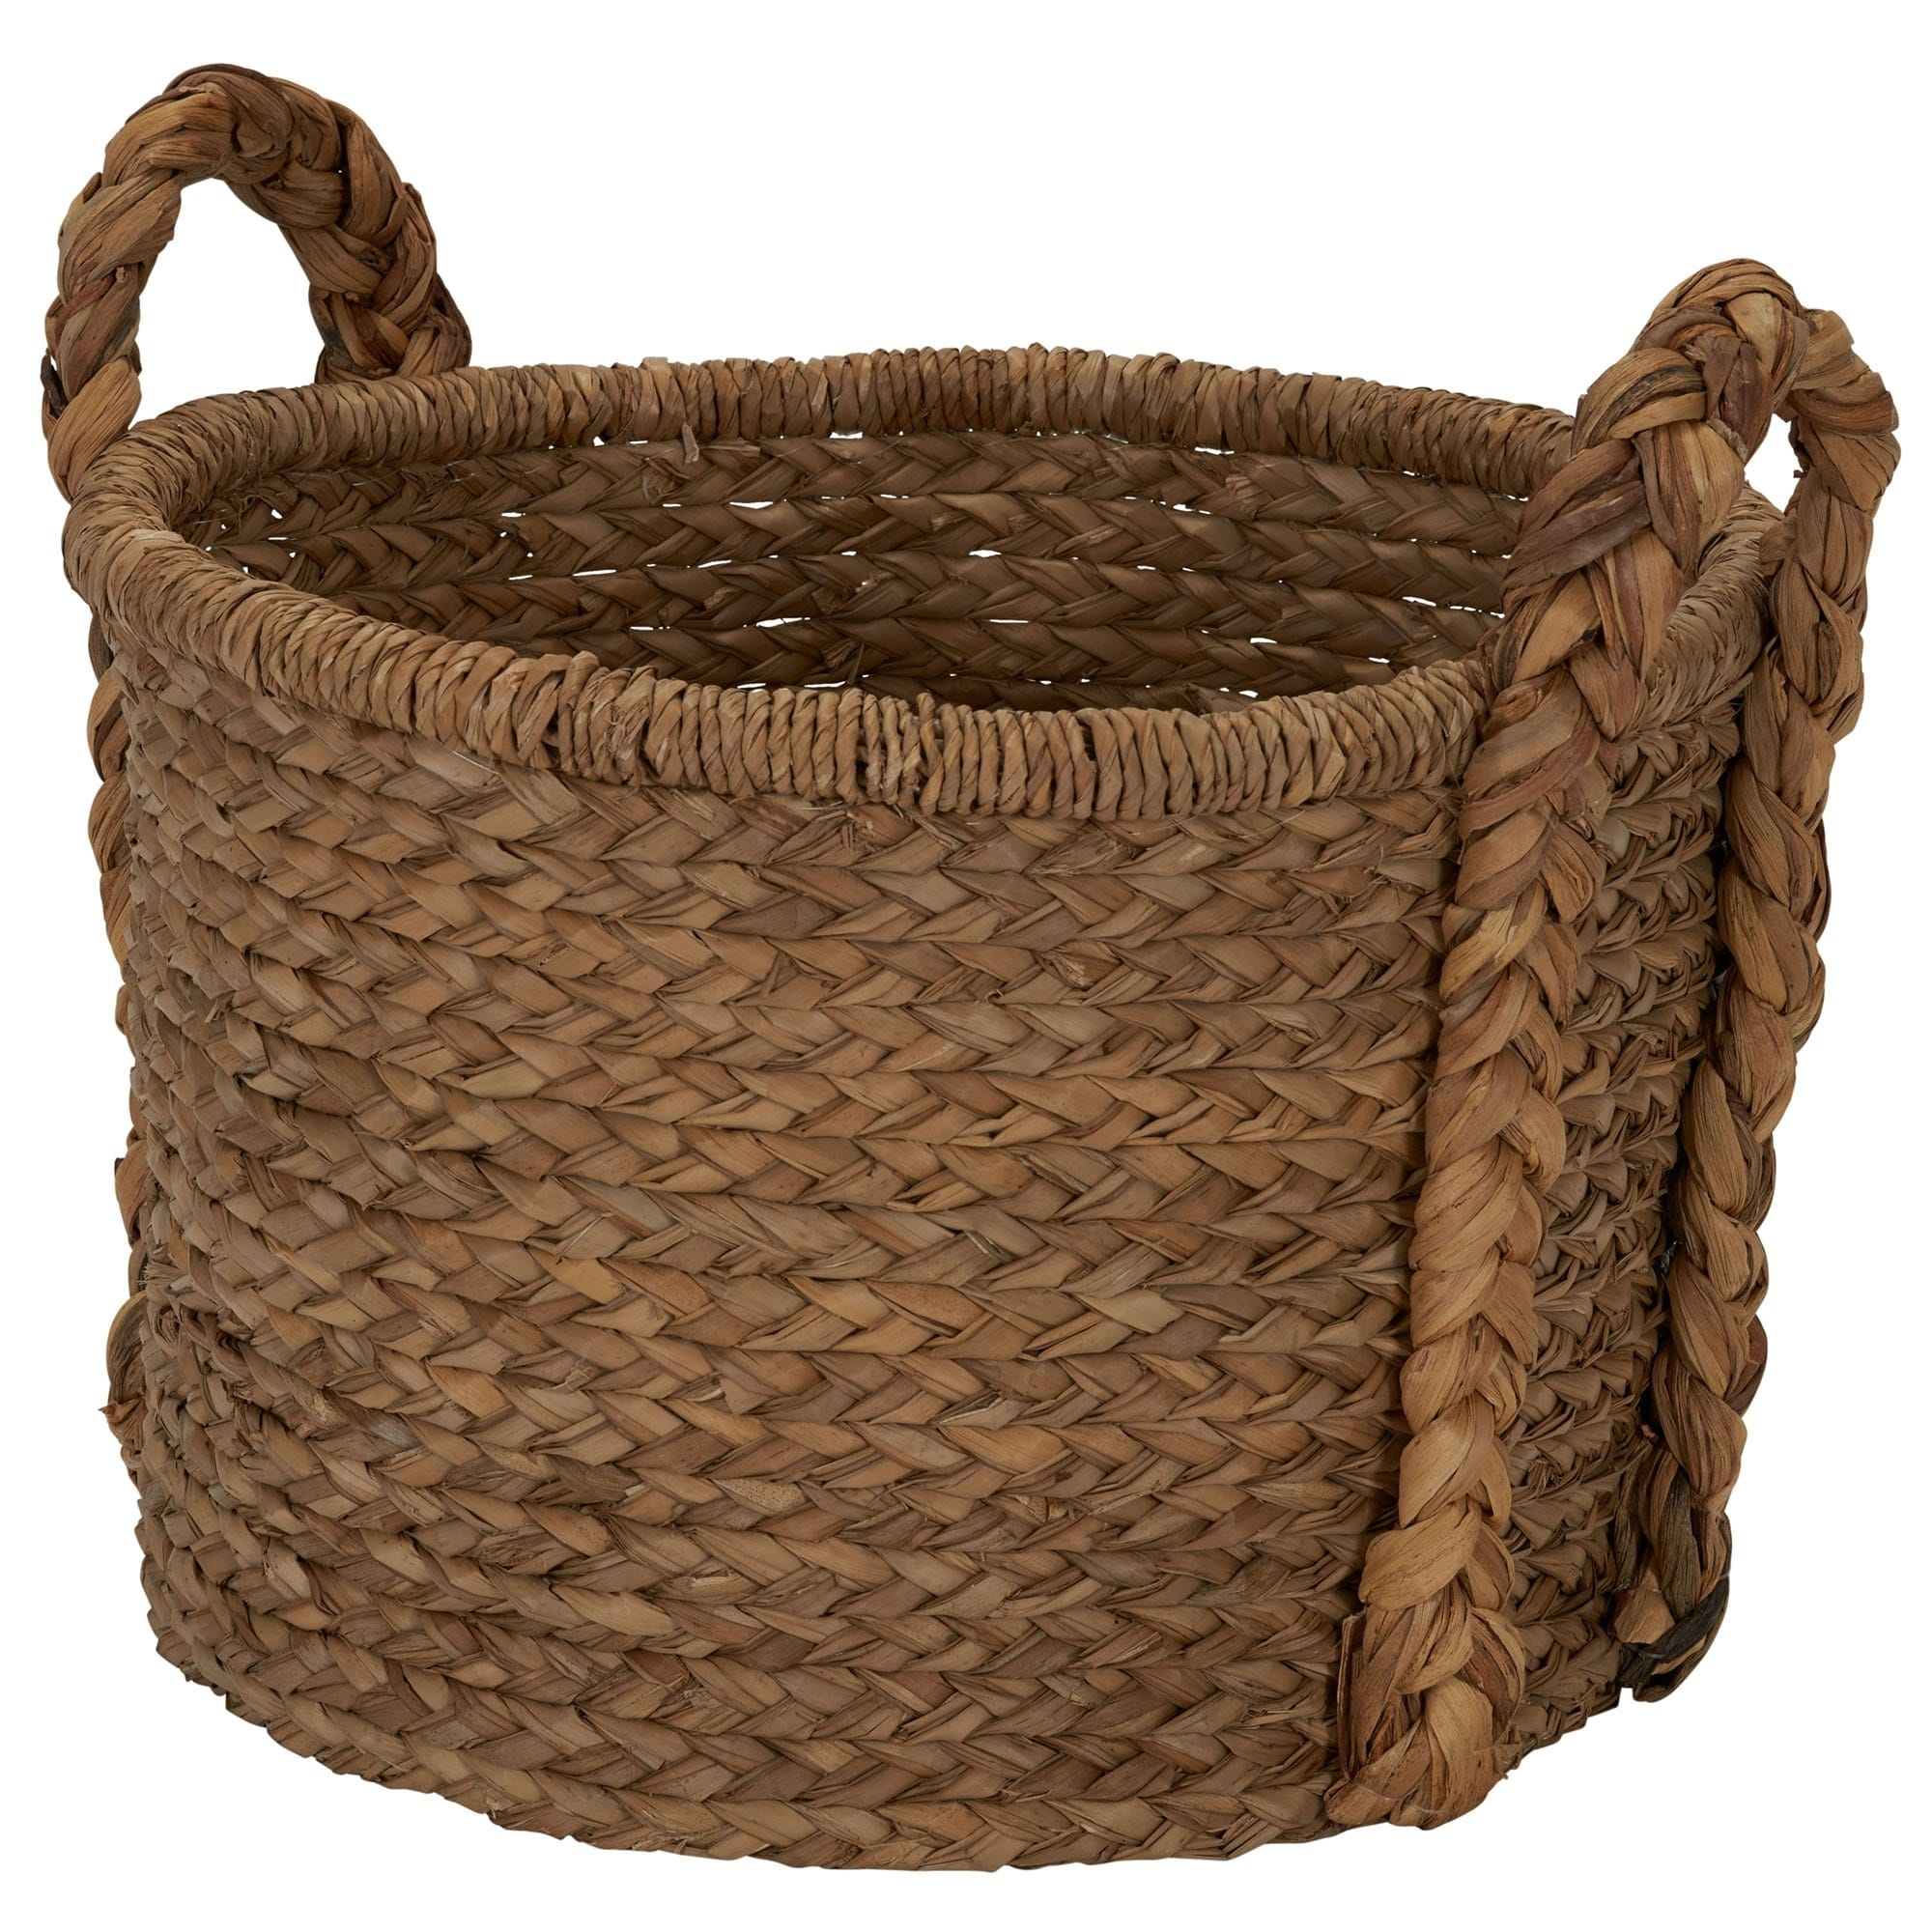 Charmant Shop Household Essentials Large Wicker Floor Basket With Braided Handle    On Sale   Free Shipping Today   Overstock.com   12730261